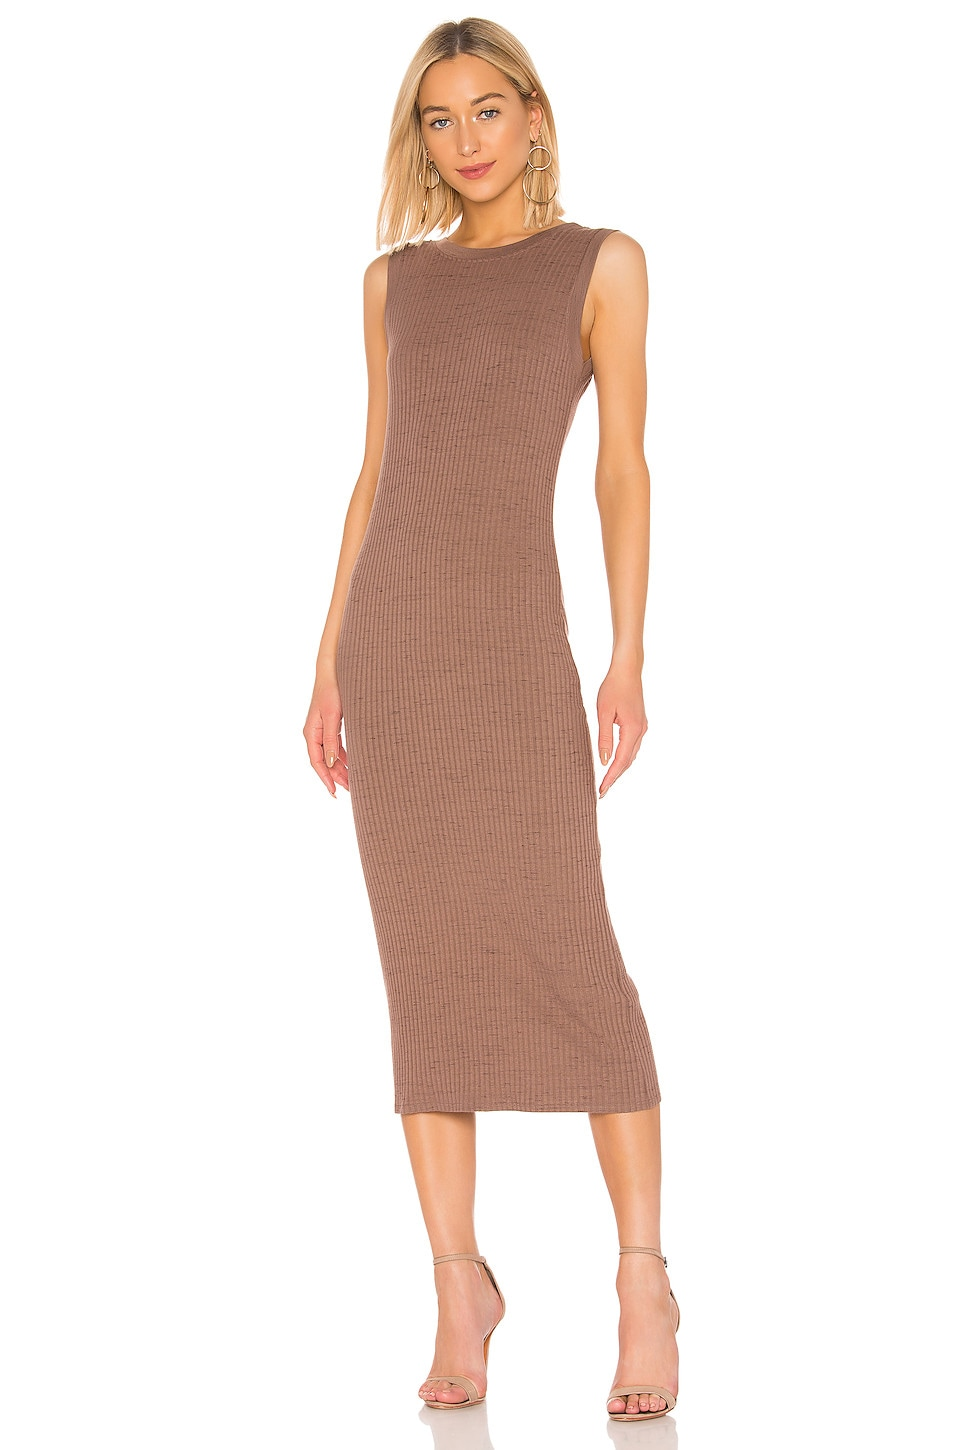 David Lerner Scoop Back Muscle Midi Dress in Fawn